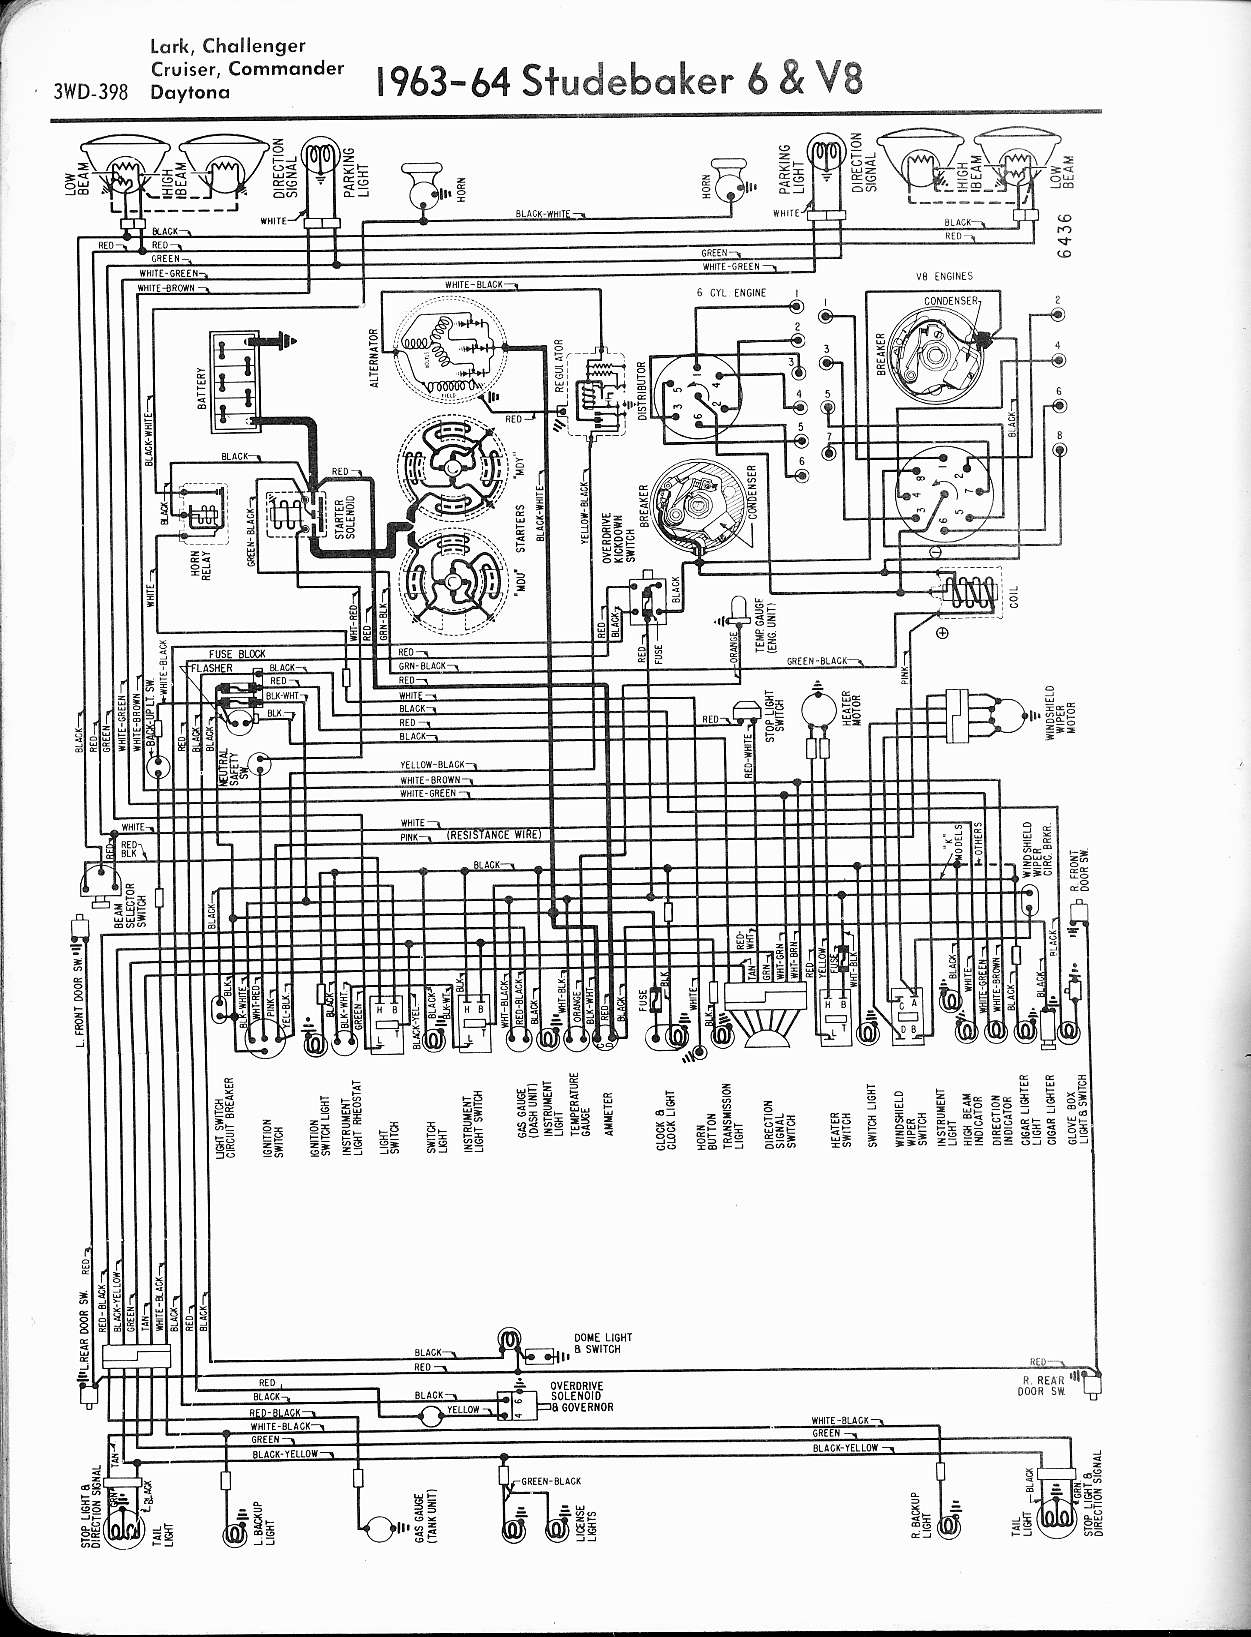 Wiring Diagram For 196364 Studebaker 6 And V8 Lark Challenger ... on